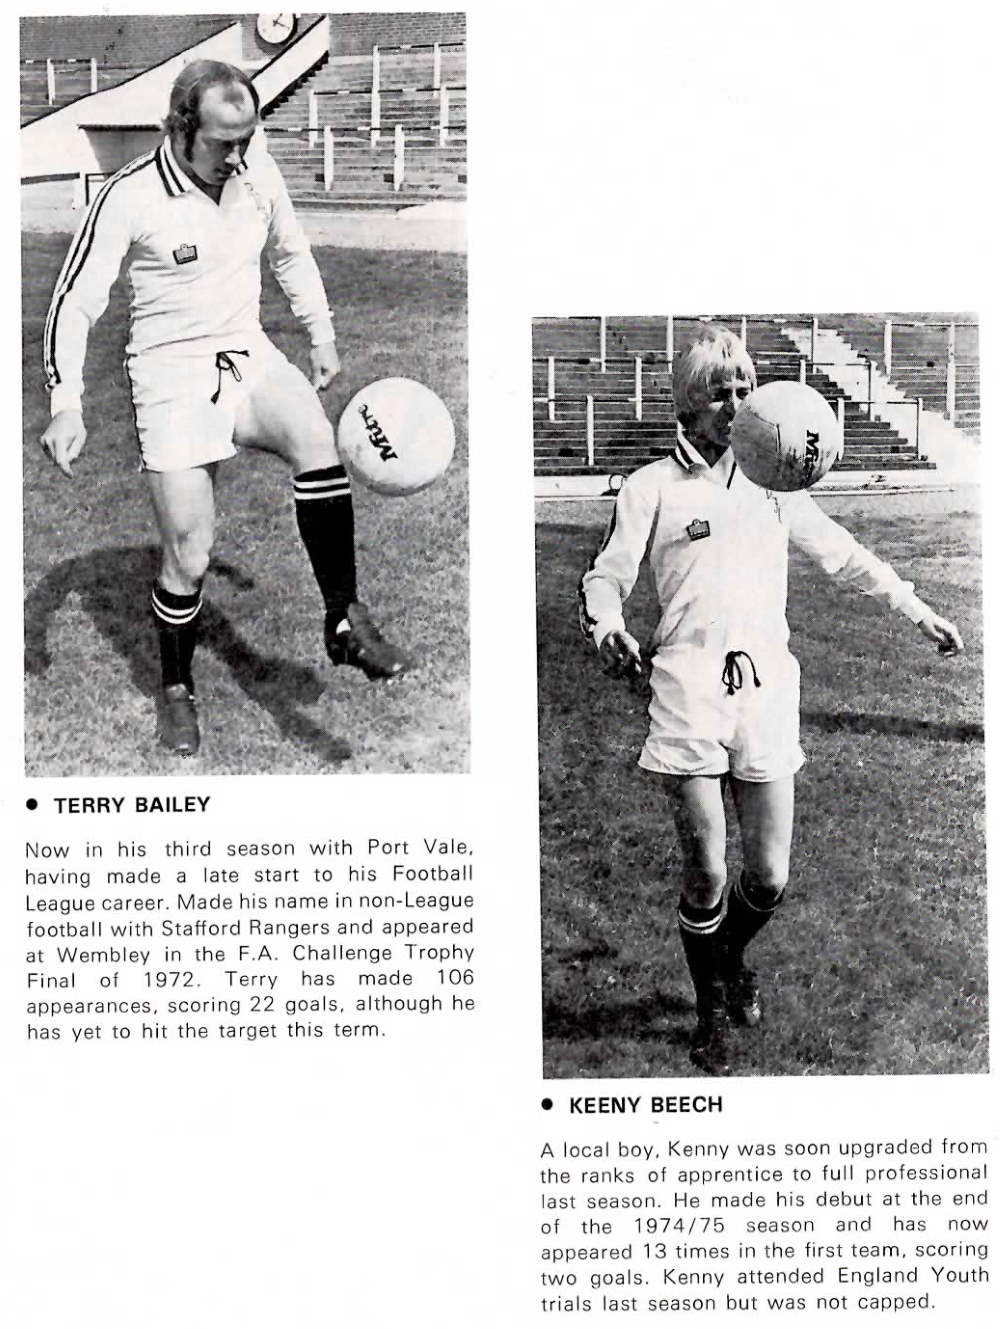 Terry Bailey and Kenny Beech